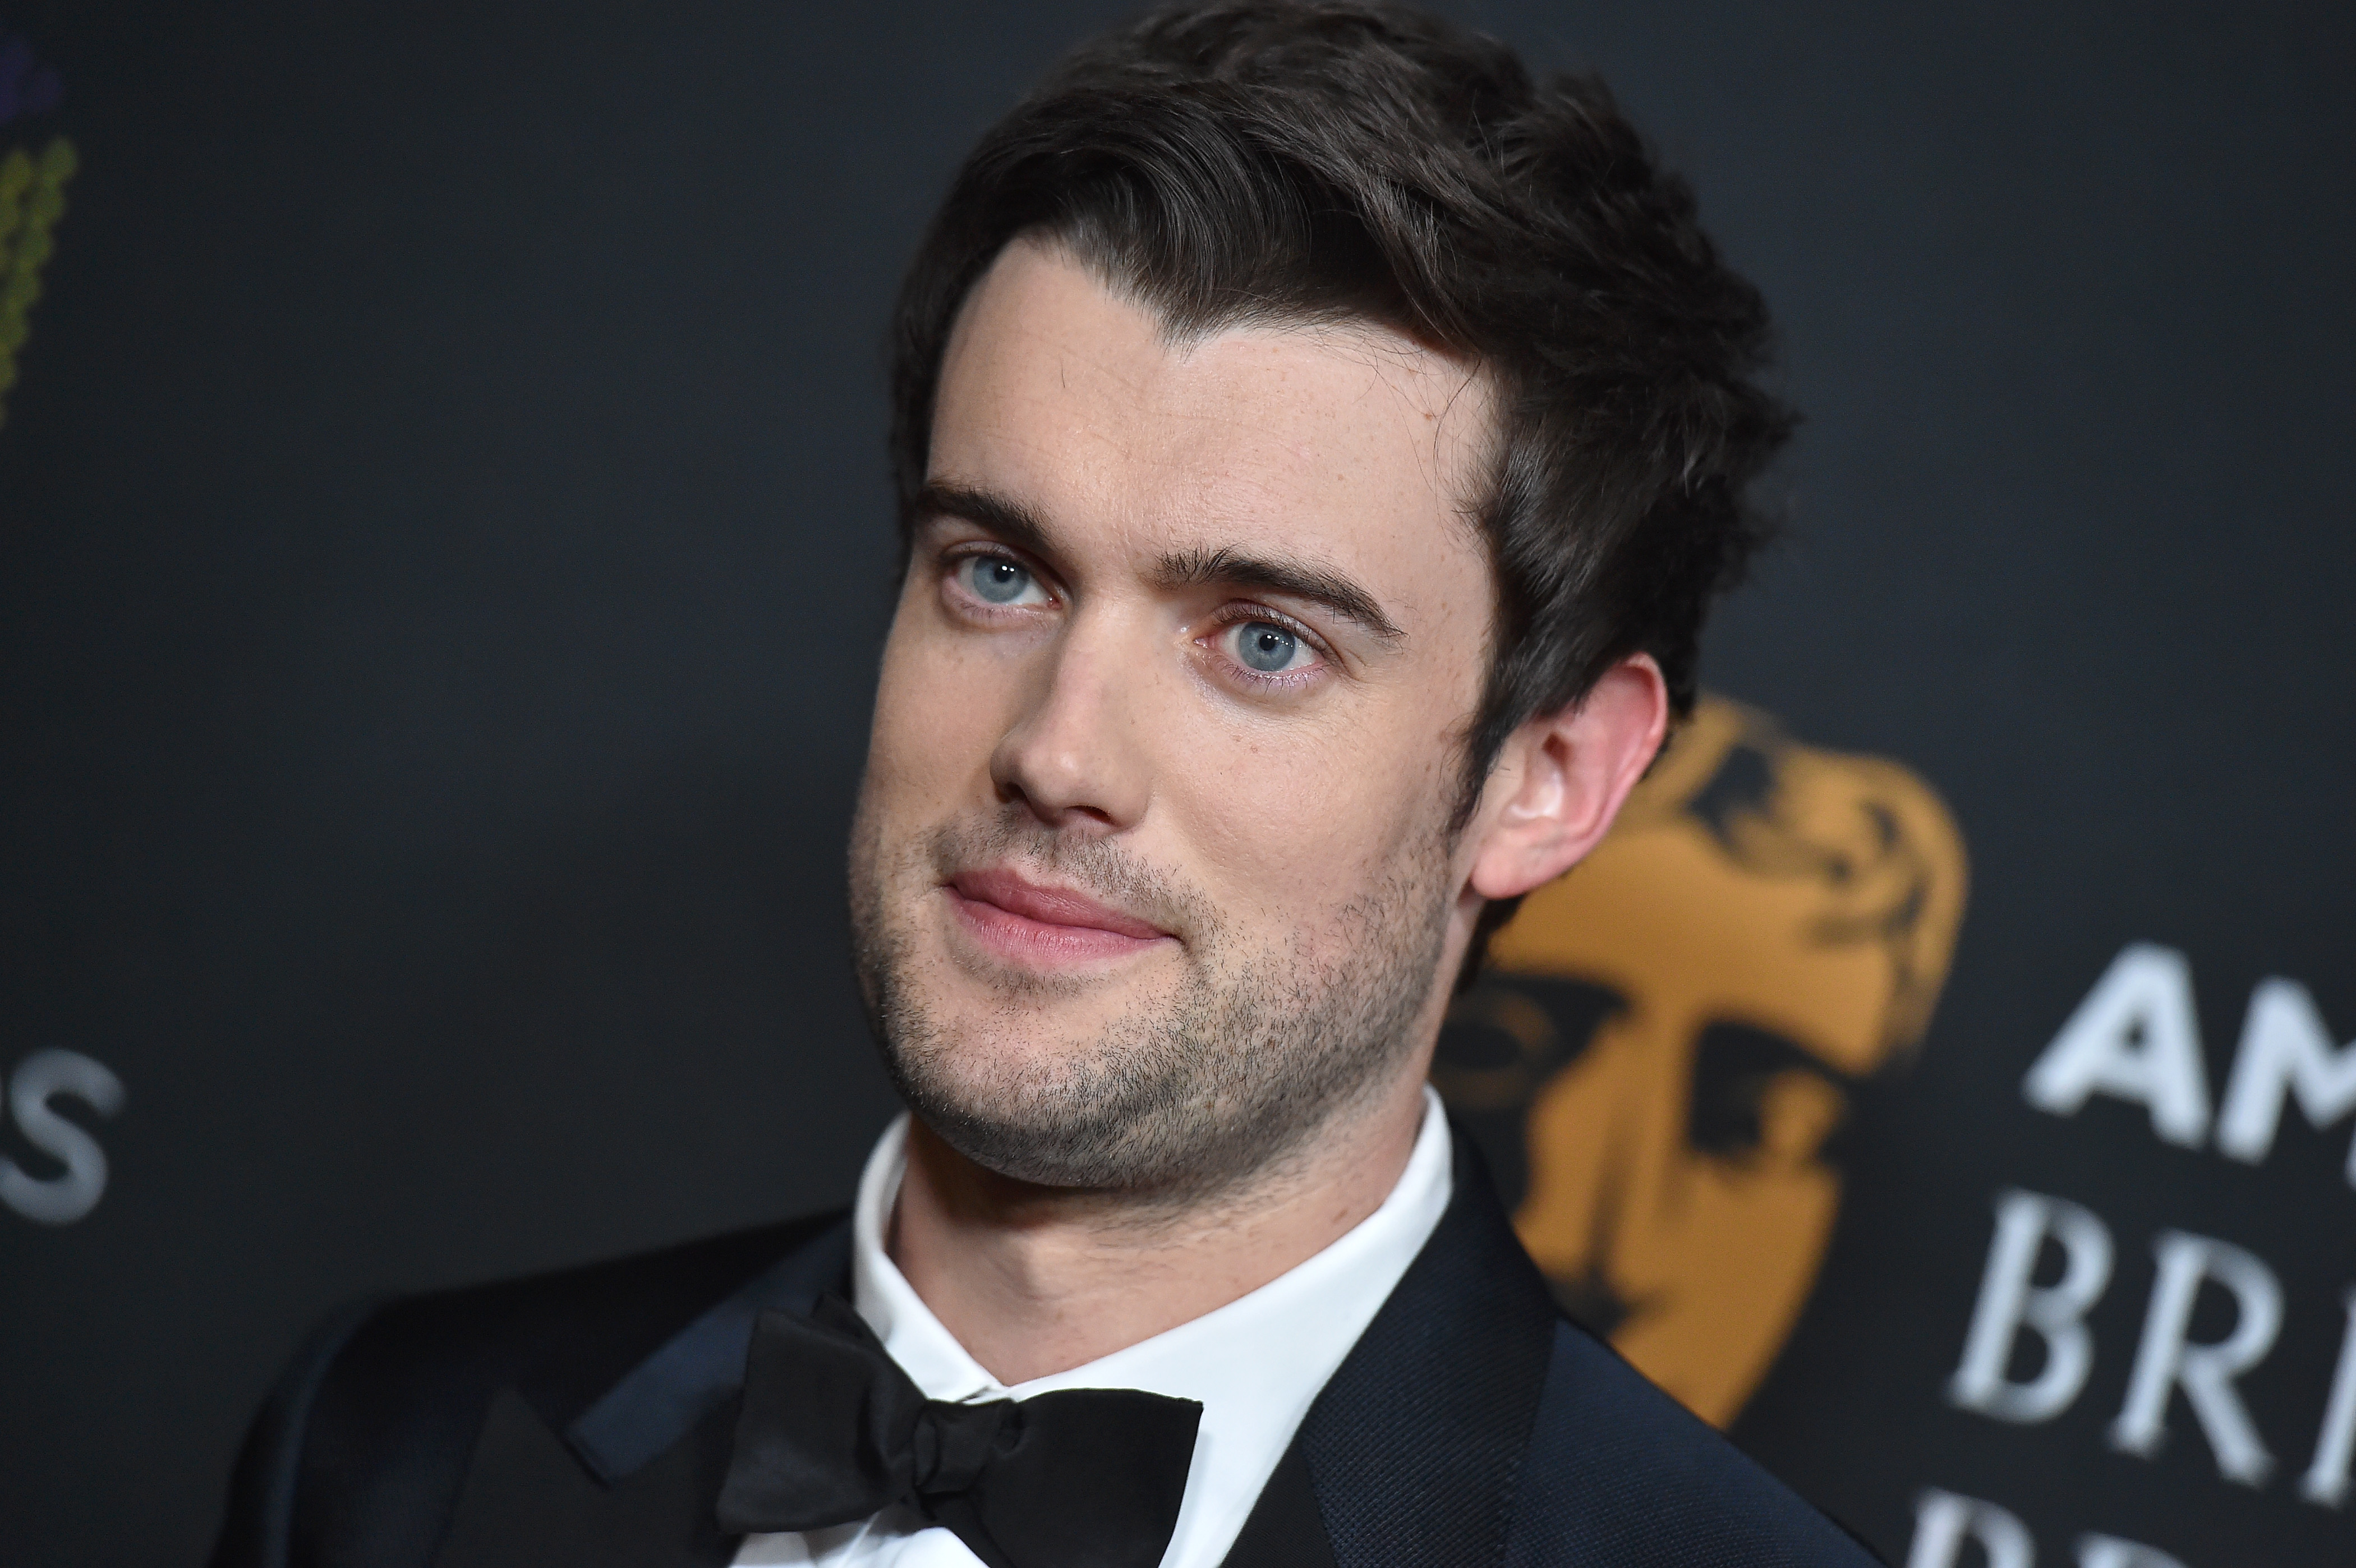 Jack Whitehall age, career and relationship as he hosts The Graham Norton Show